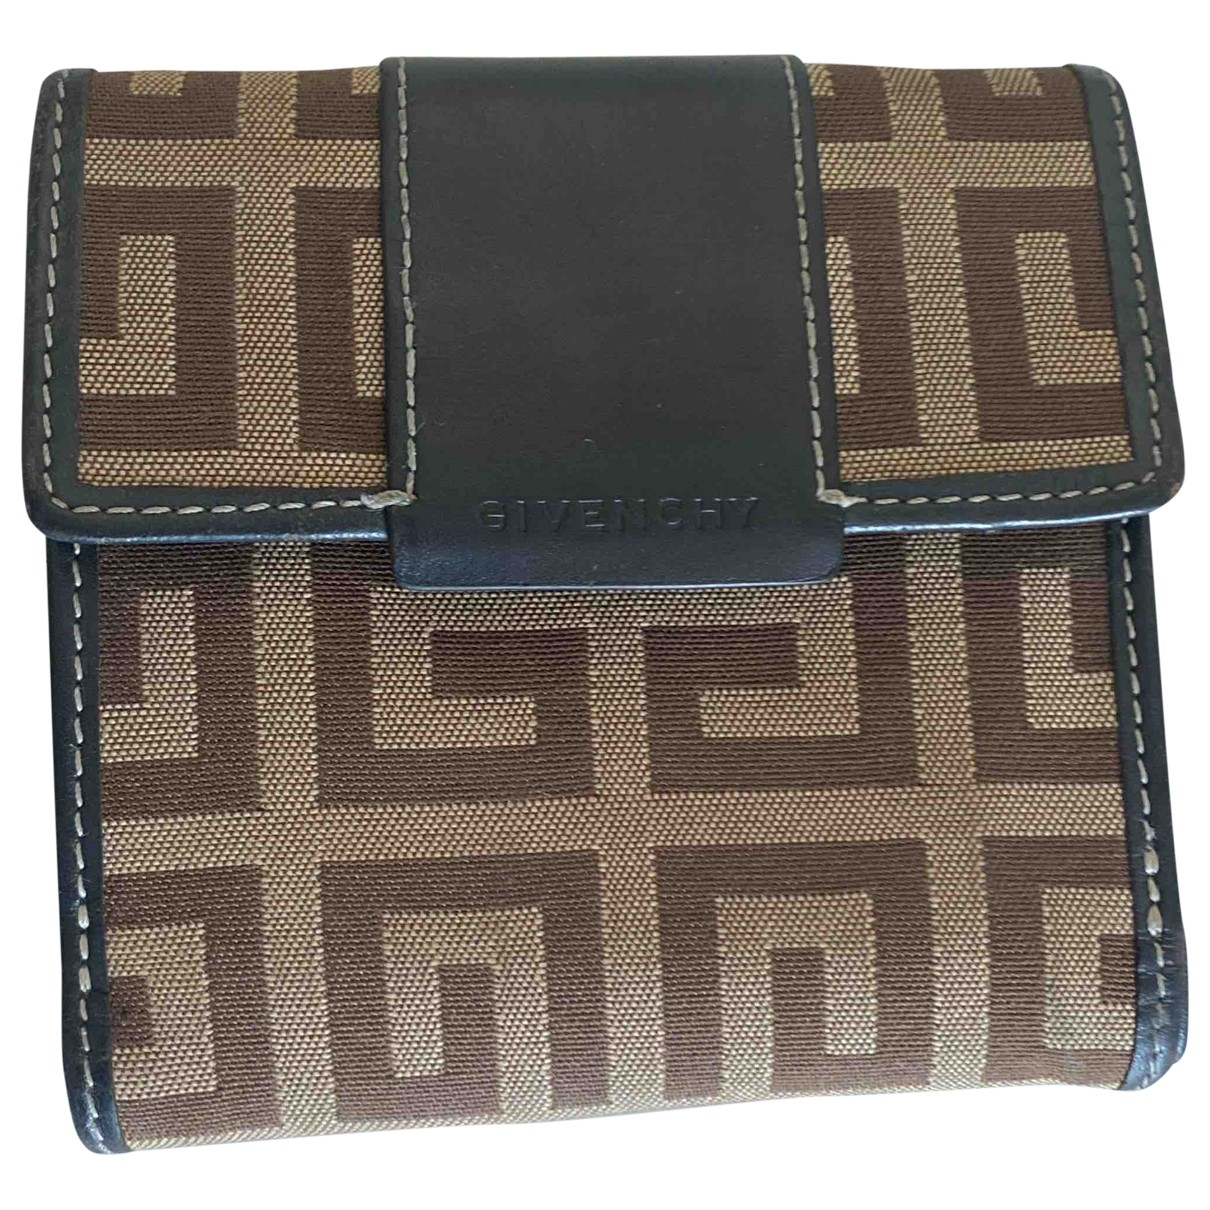 Givenchy \N Brown Cloth wallet for Women \N